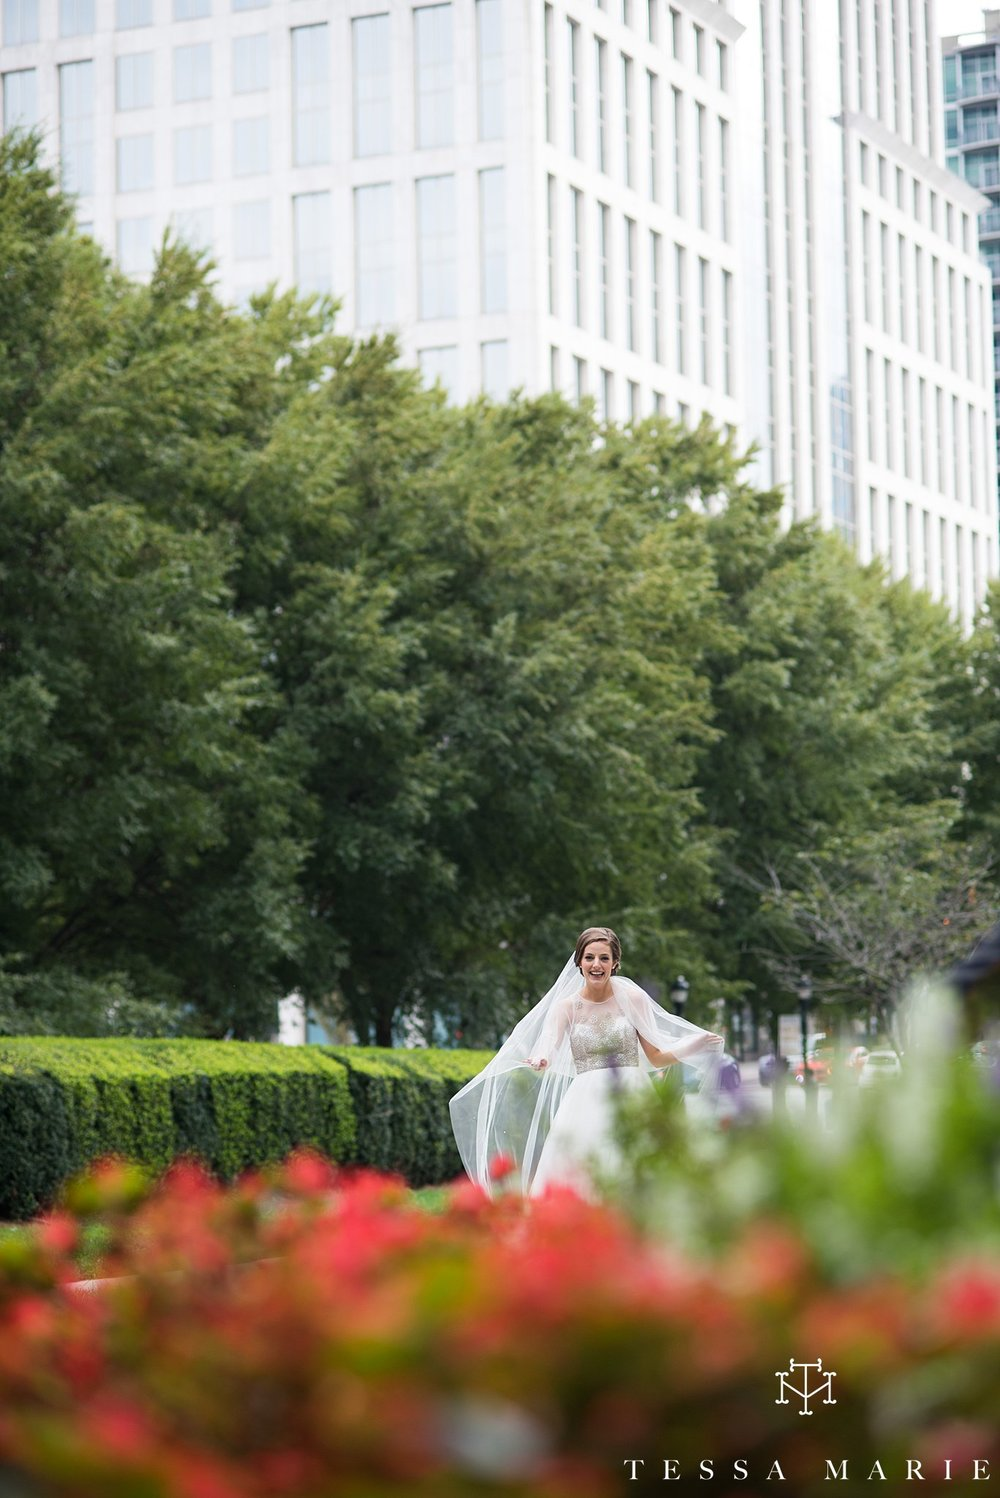 atlanta_wedding_photographer_tessa_marie_weddings_lowes_hotel_peachtree_midtown_fall_wedding_0274.jpg